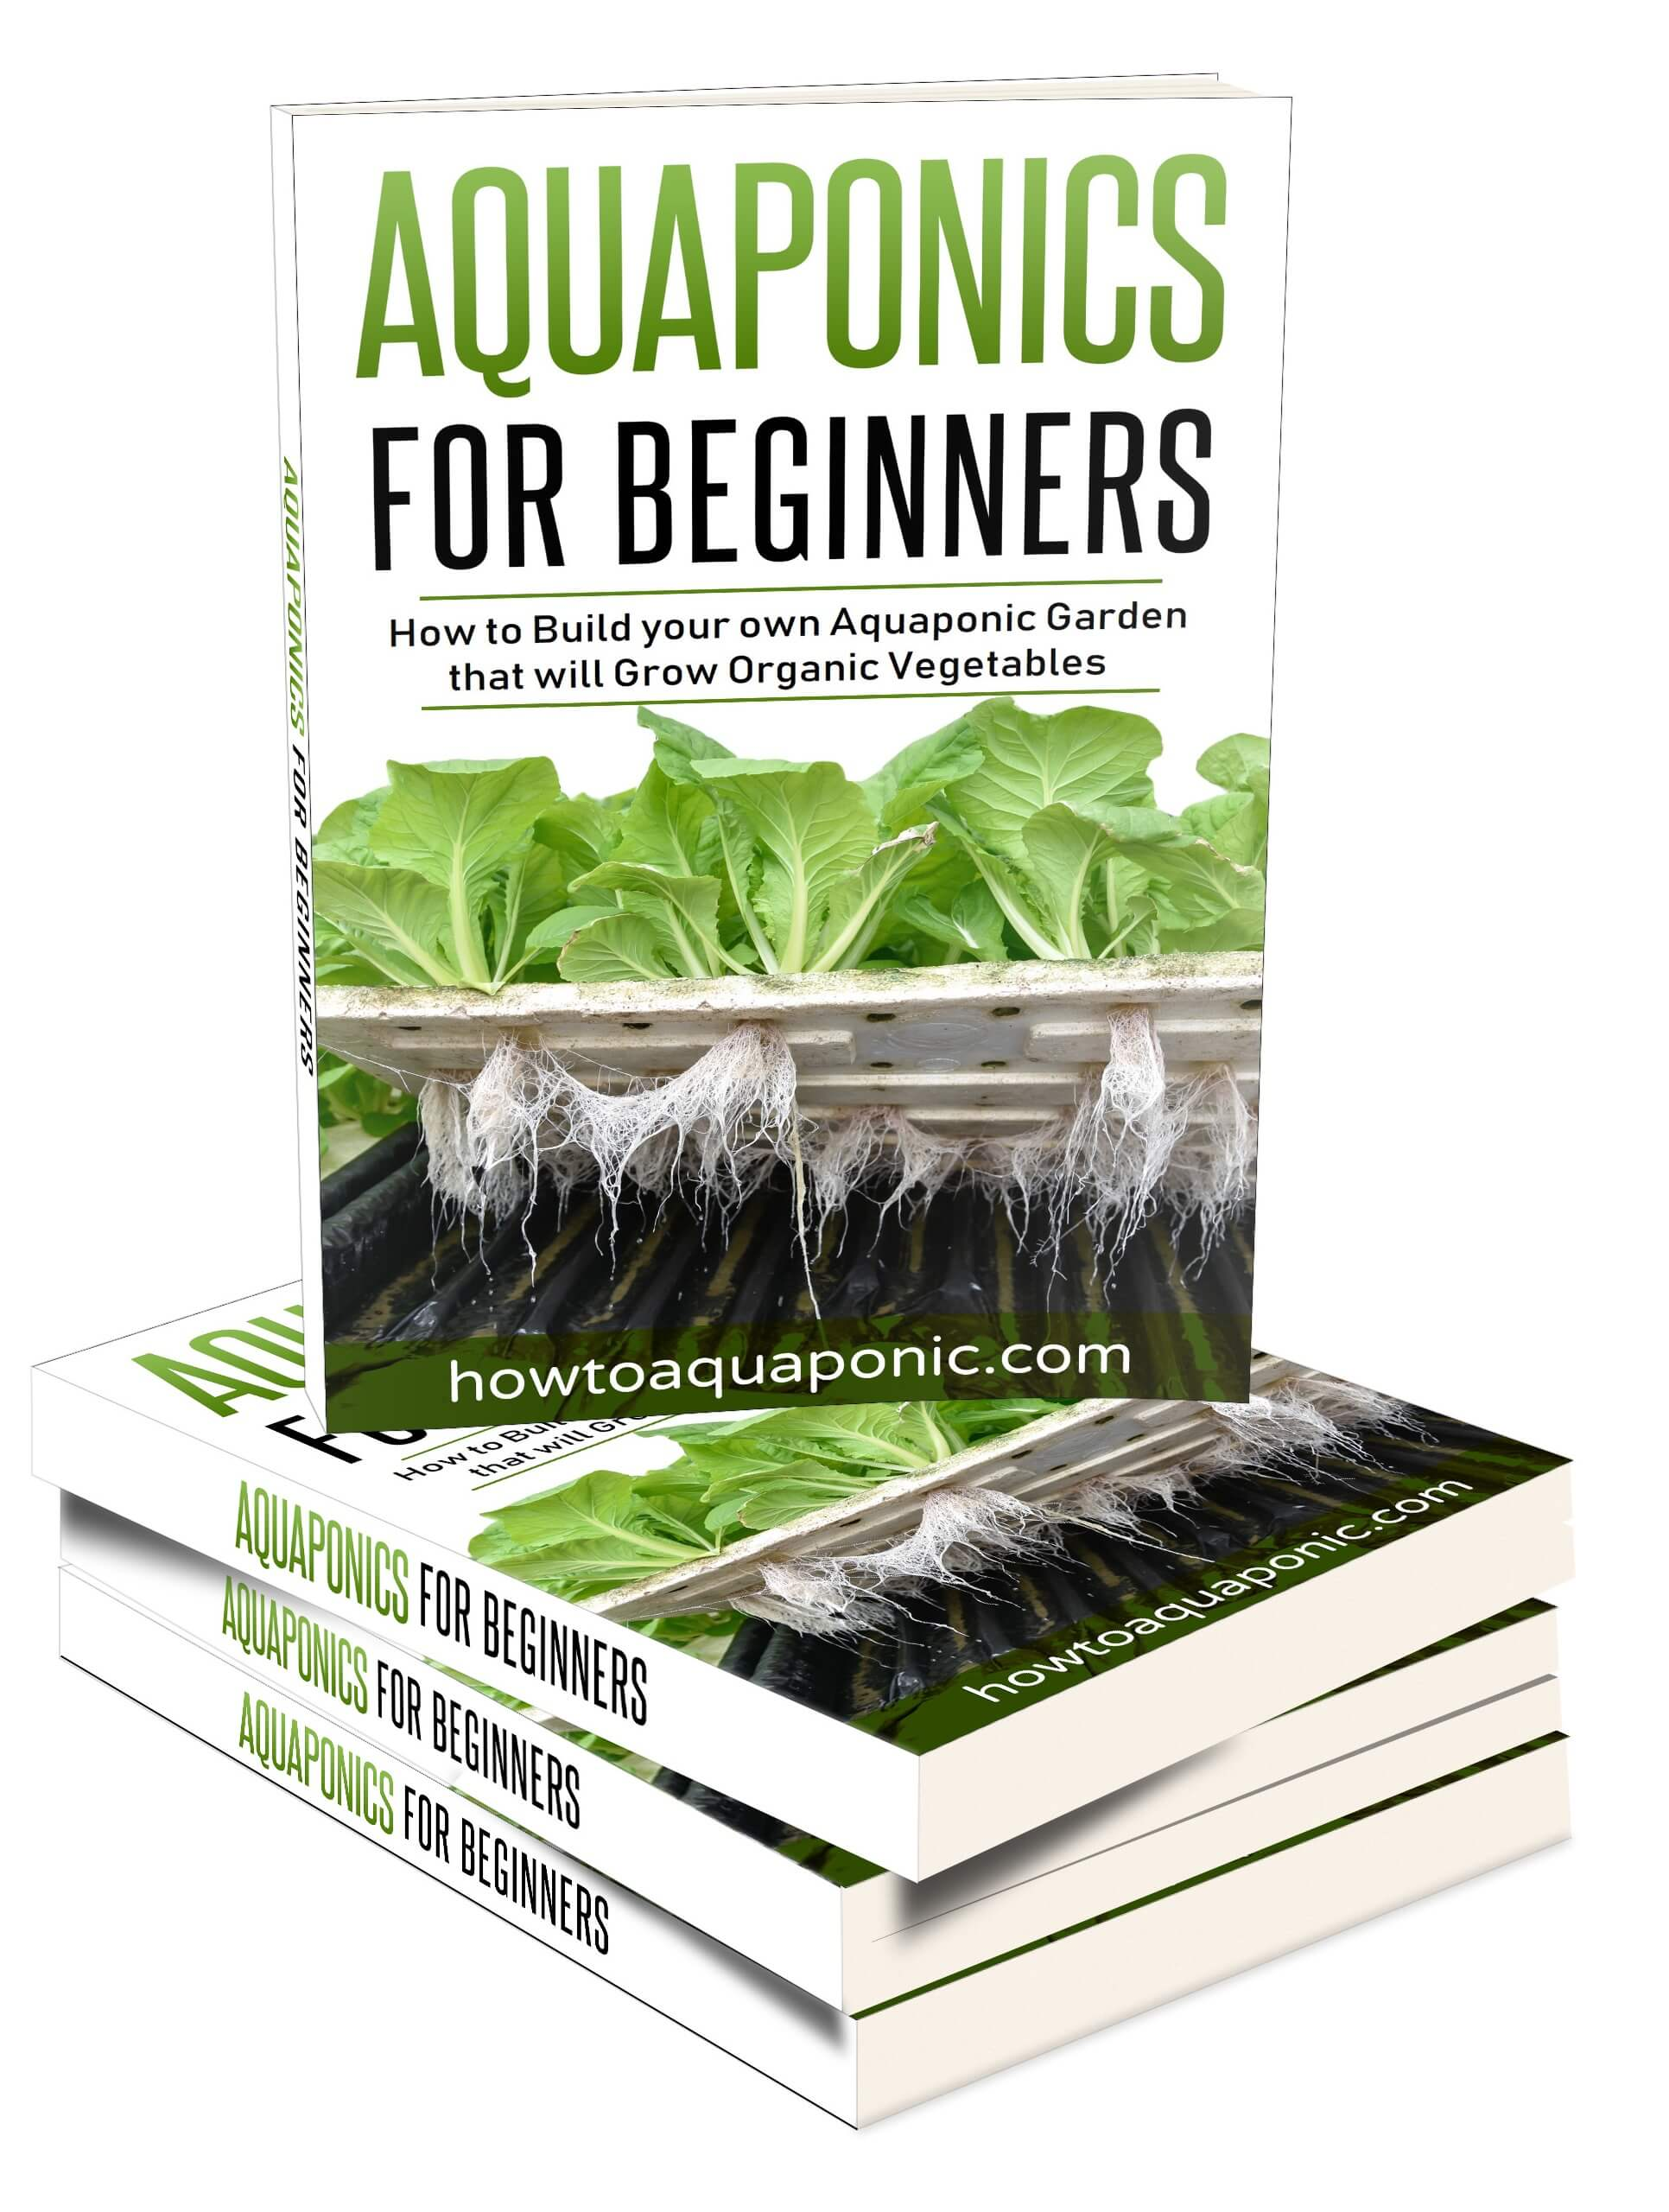 Aquaponics Supplies - What you Will Need | How To Aquaponic